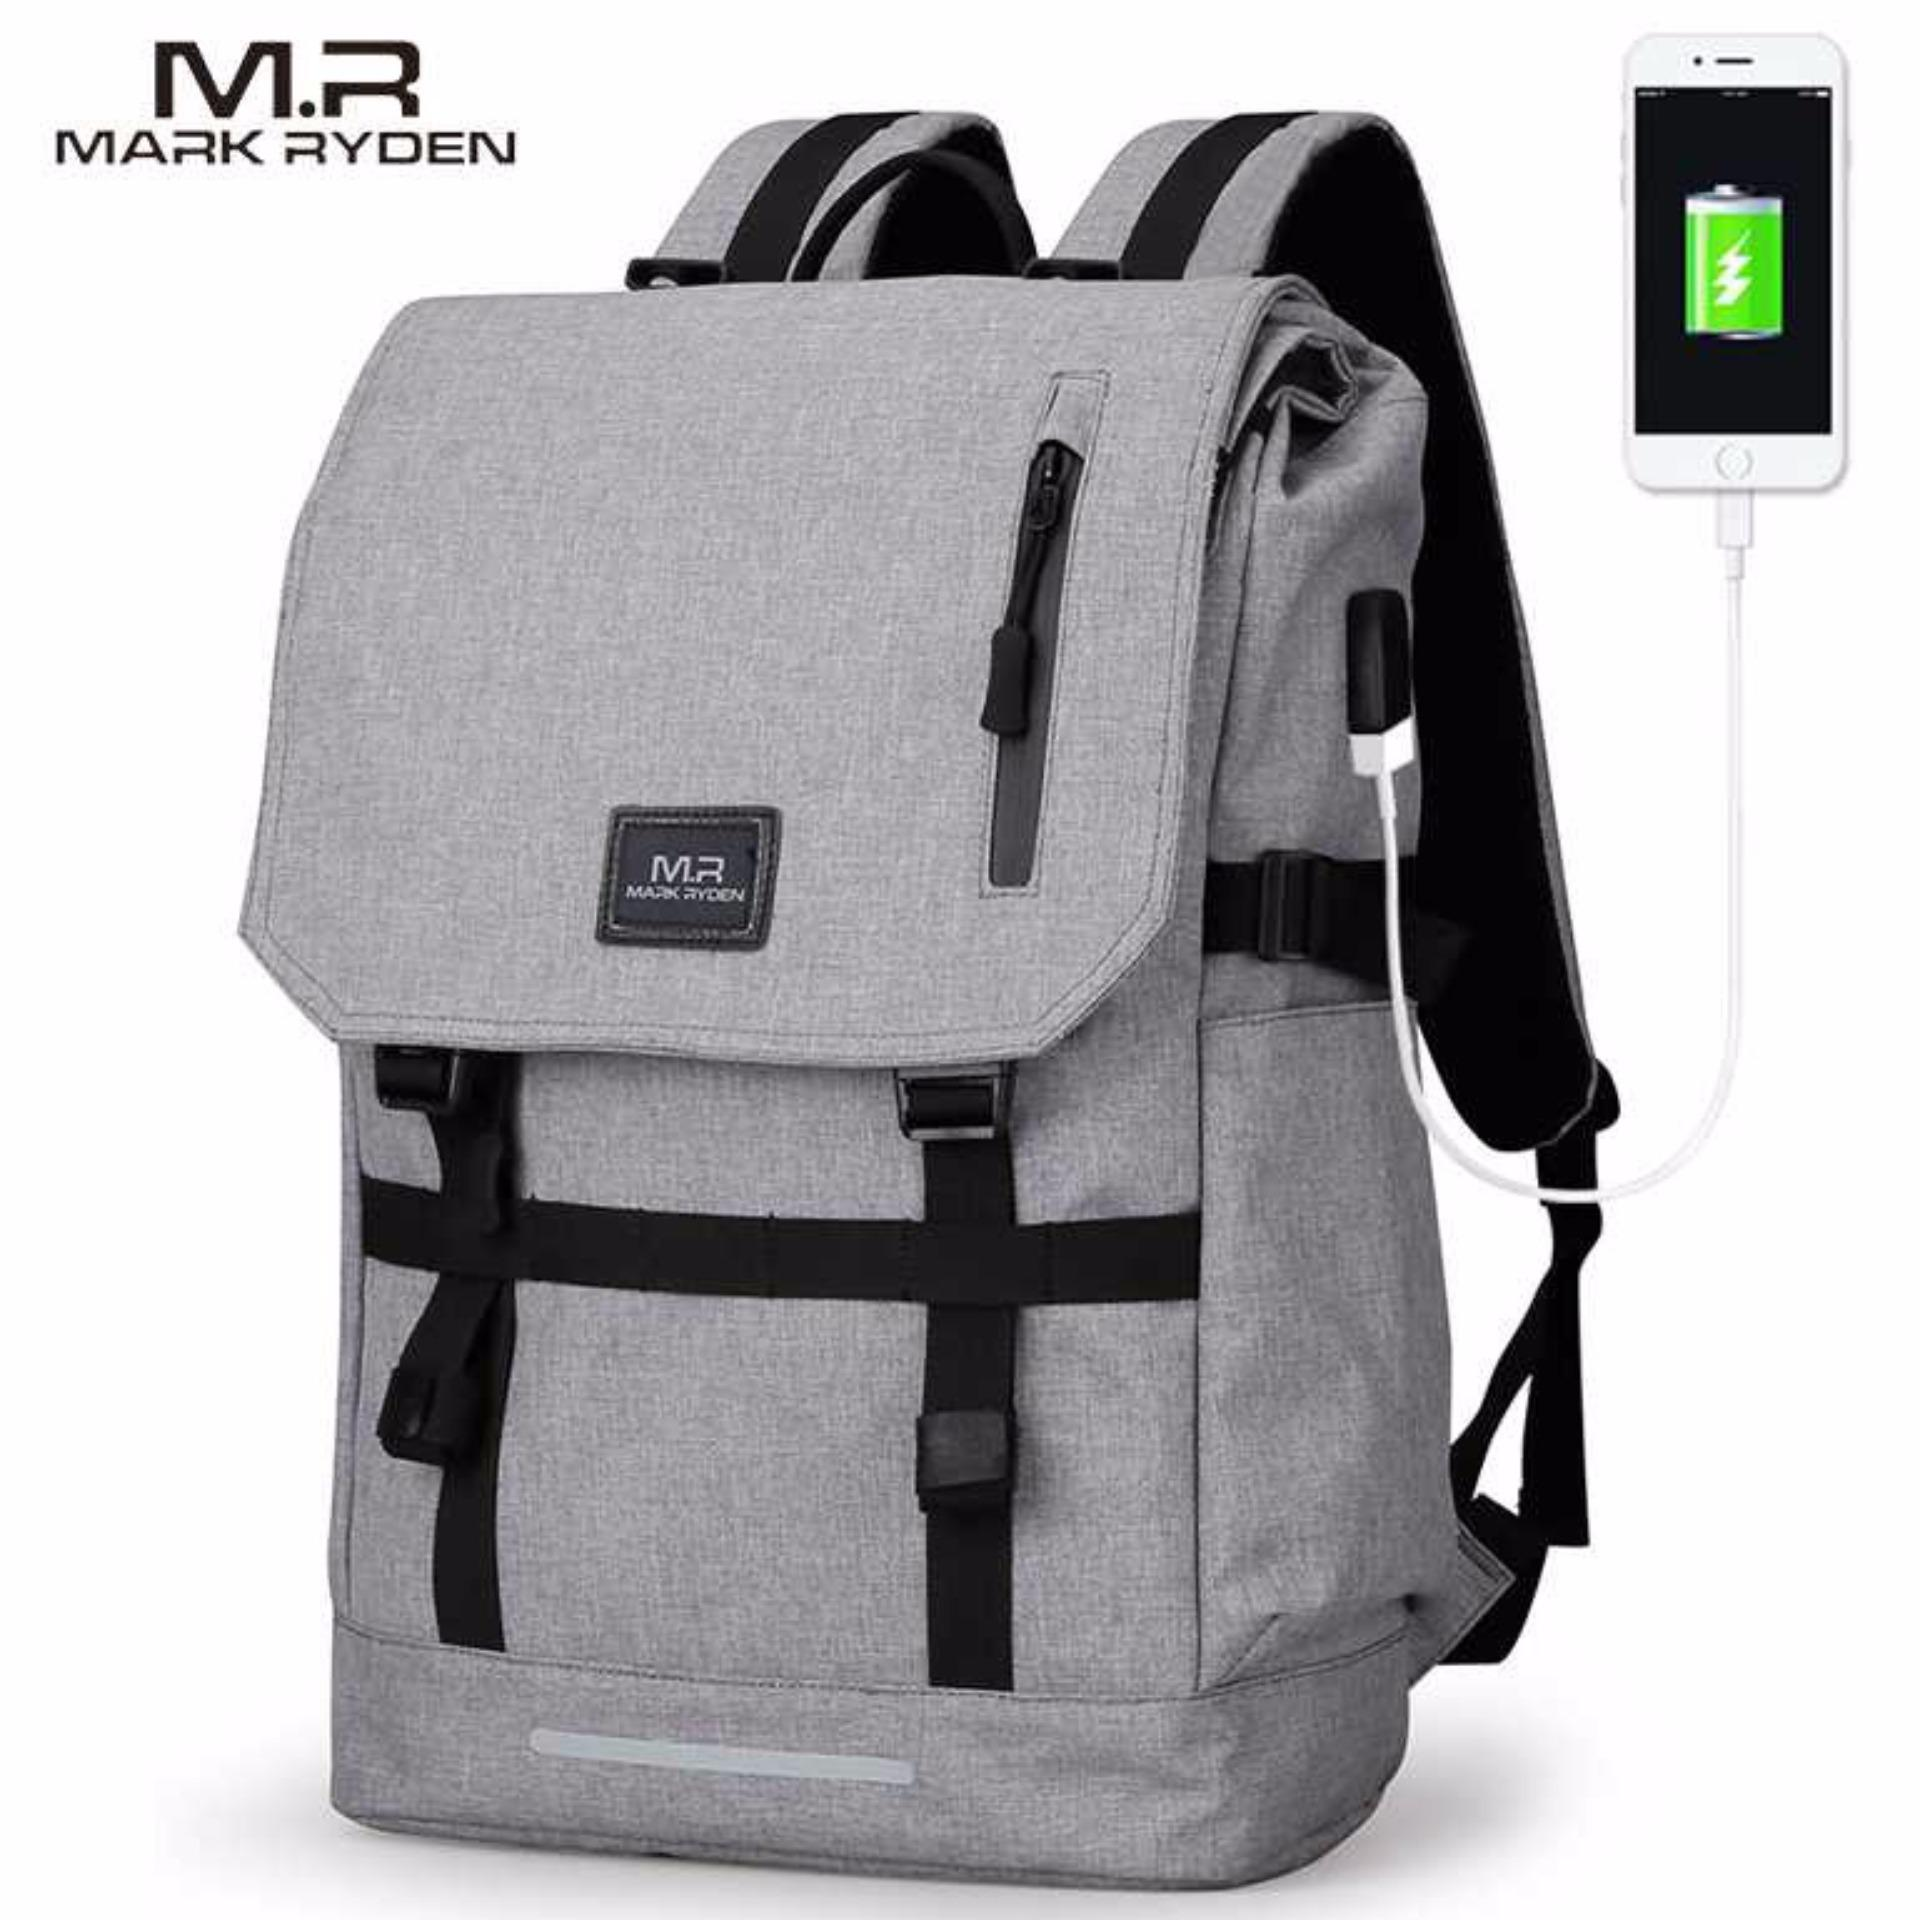 Harga Mark Ryden Tas Ransel Laptop Dengan Usb Charger Port Mr5748 Mark Ryden Asli